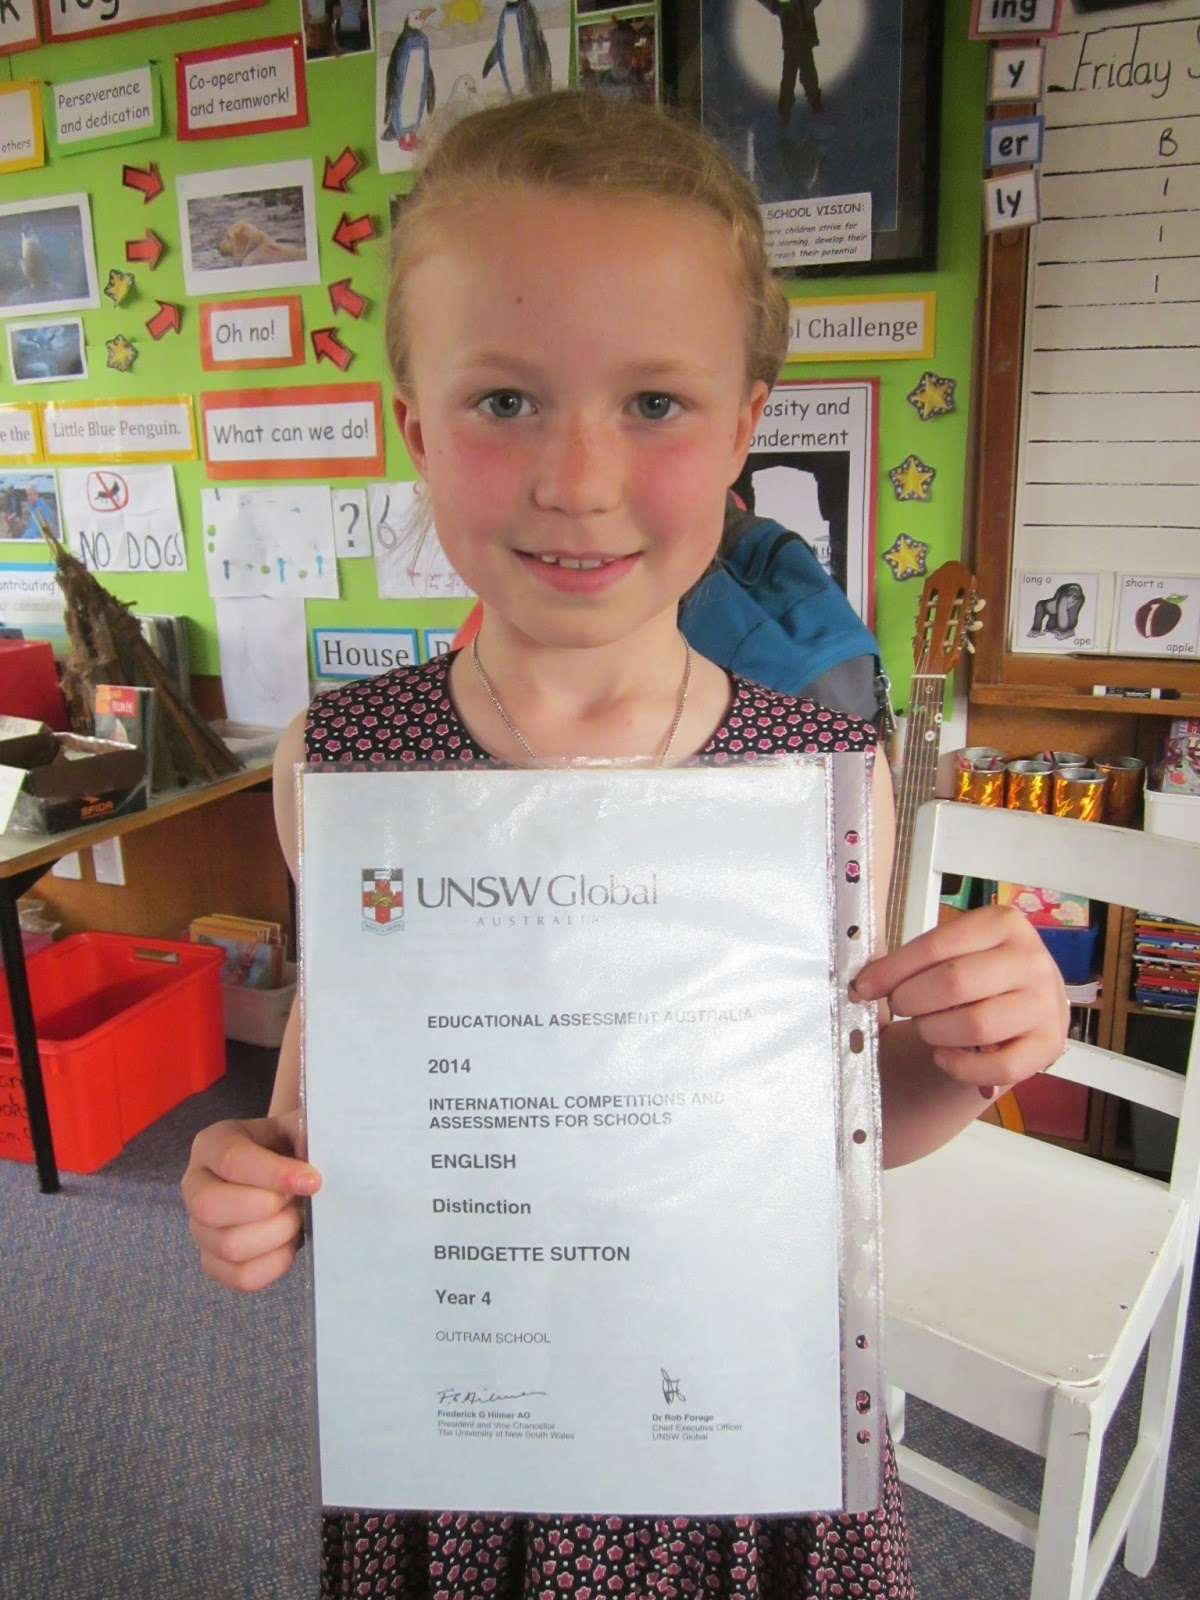 Room 9 you shine all the time: Bridgette gains distinction with ICAS